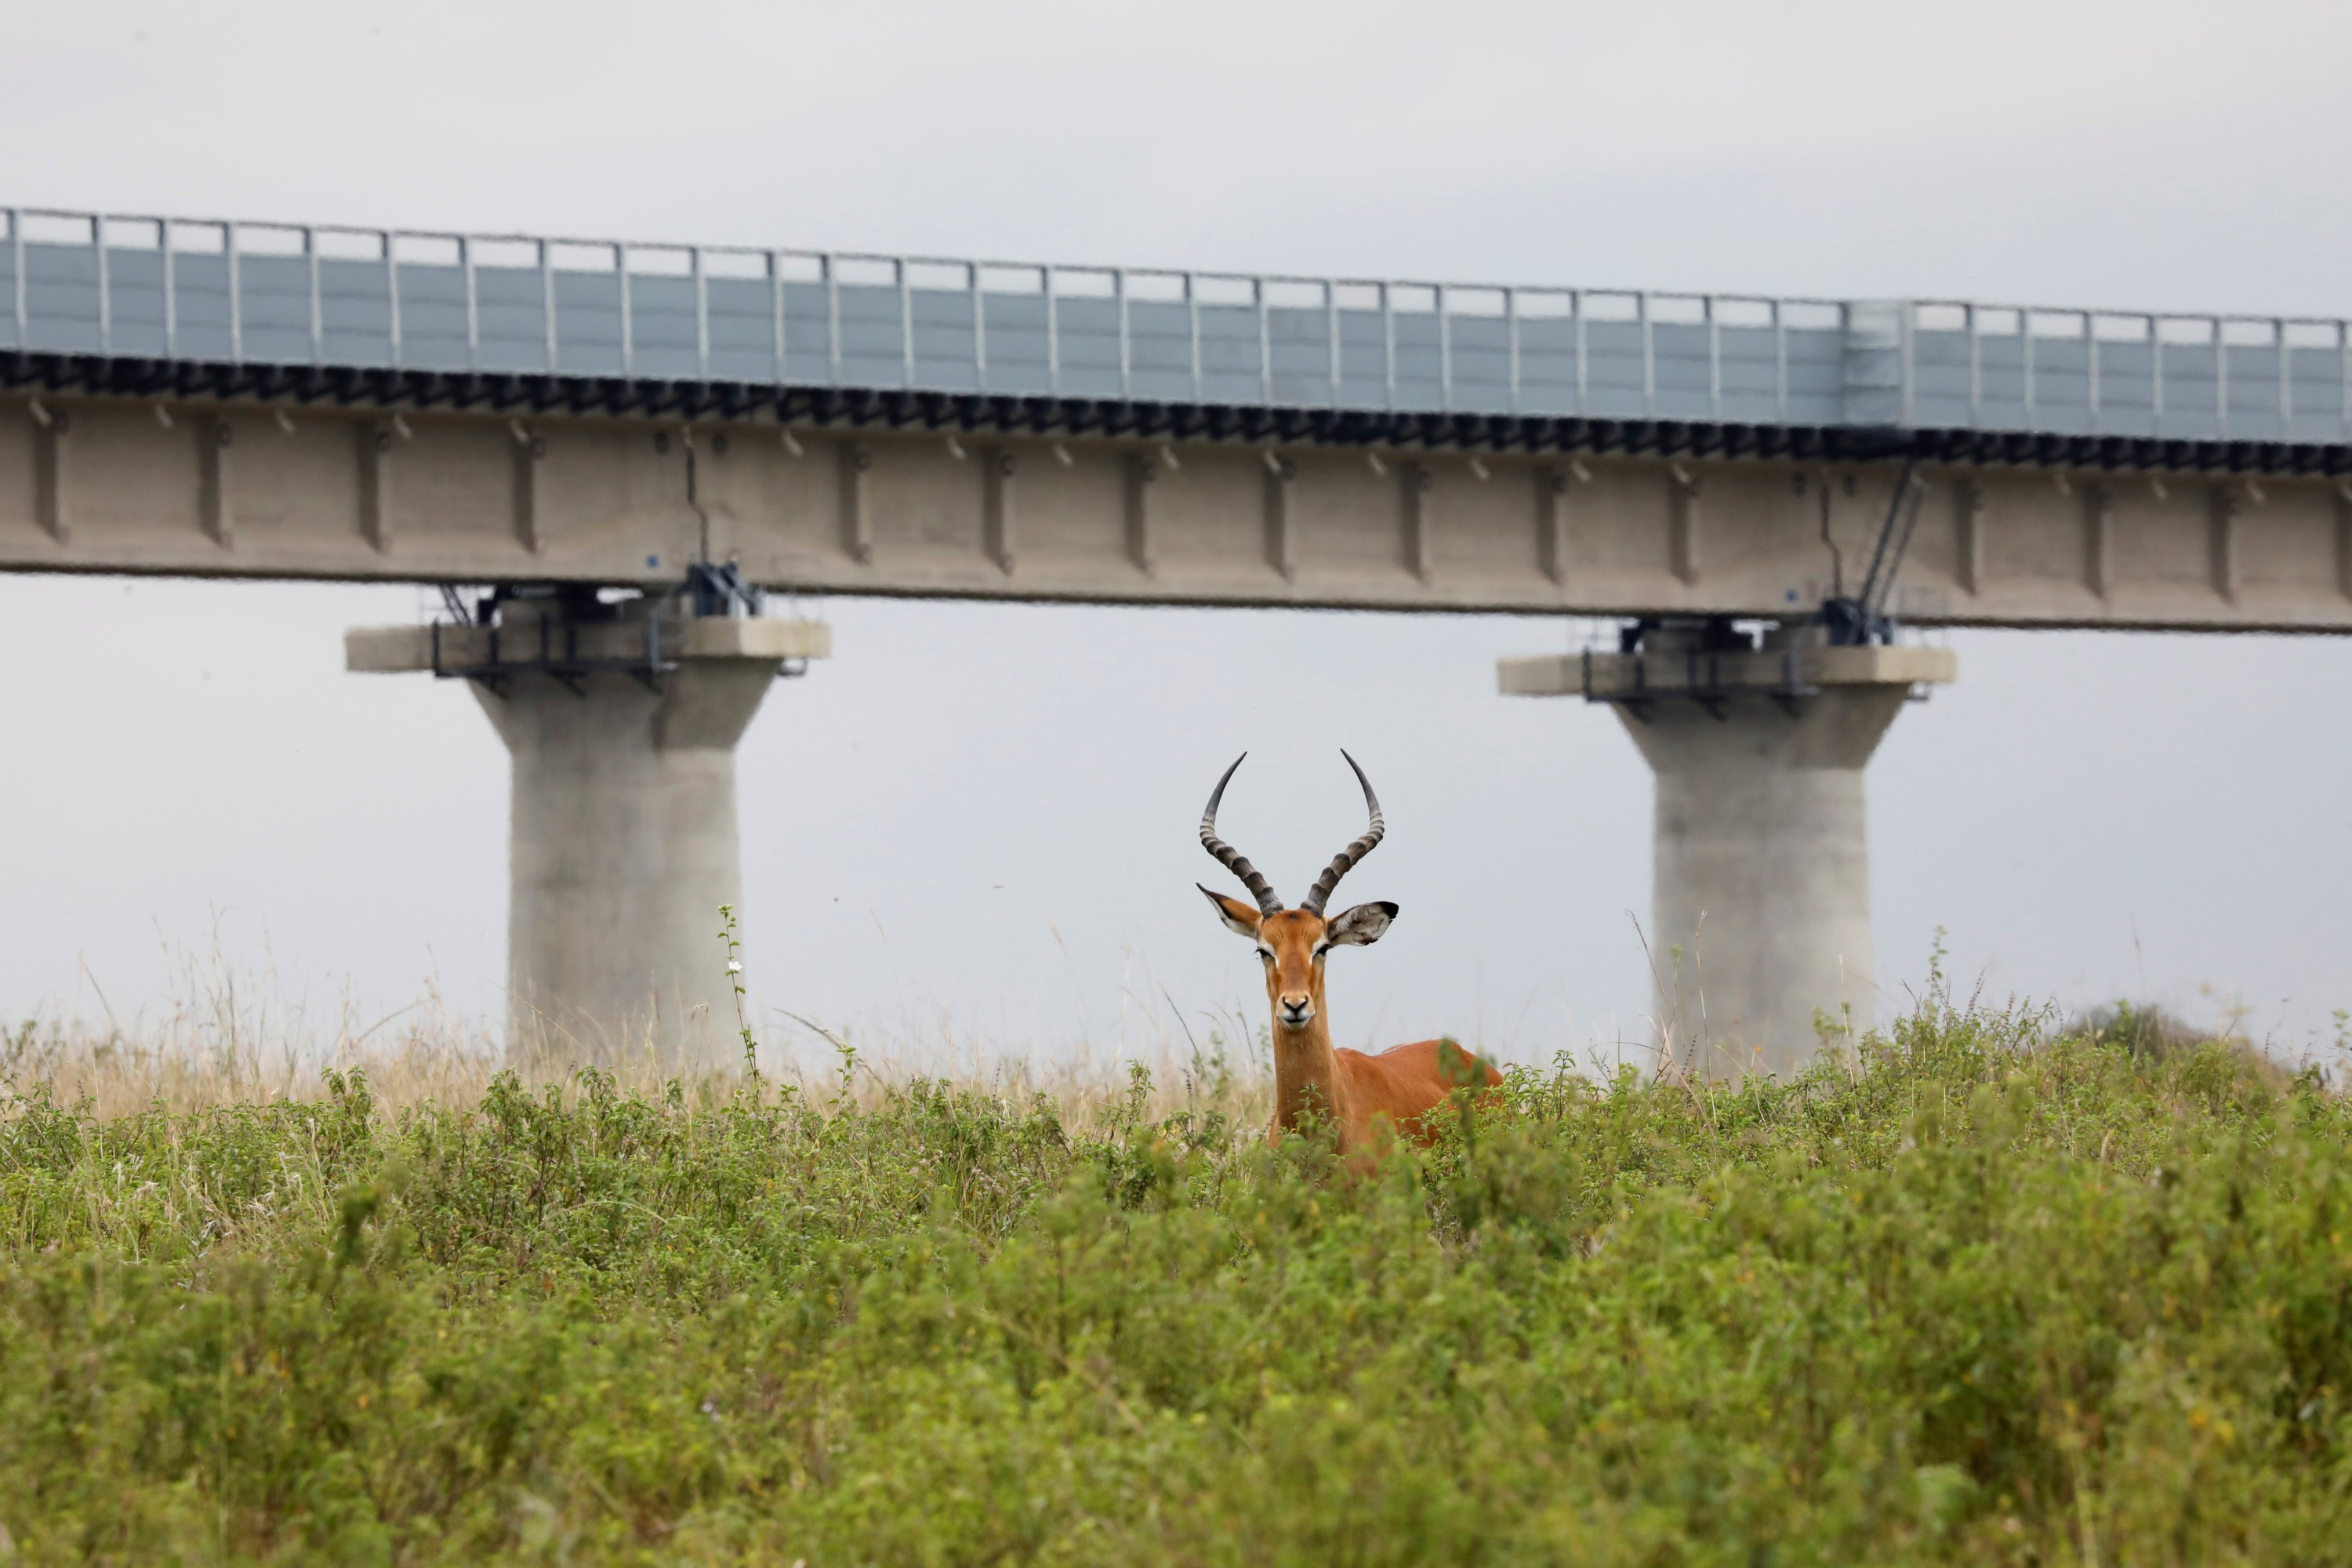 A view of an antelope with a bridge of the Standard Gauge Railway (SGR) line in the background, inside the Nairobi National Park in Nairobi, Kenya, June 15, 2020. (Reuters Photo)